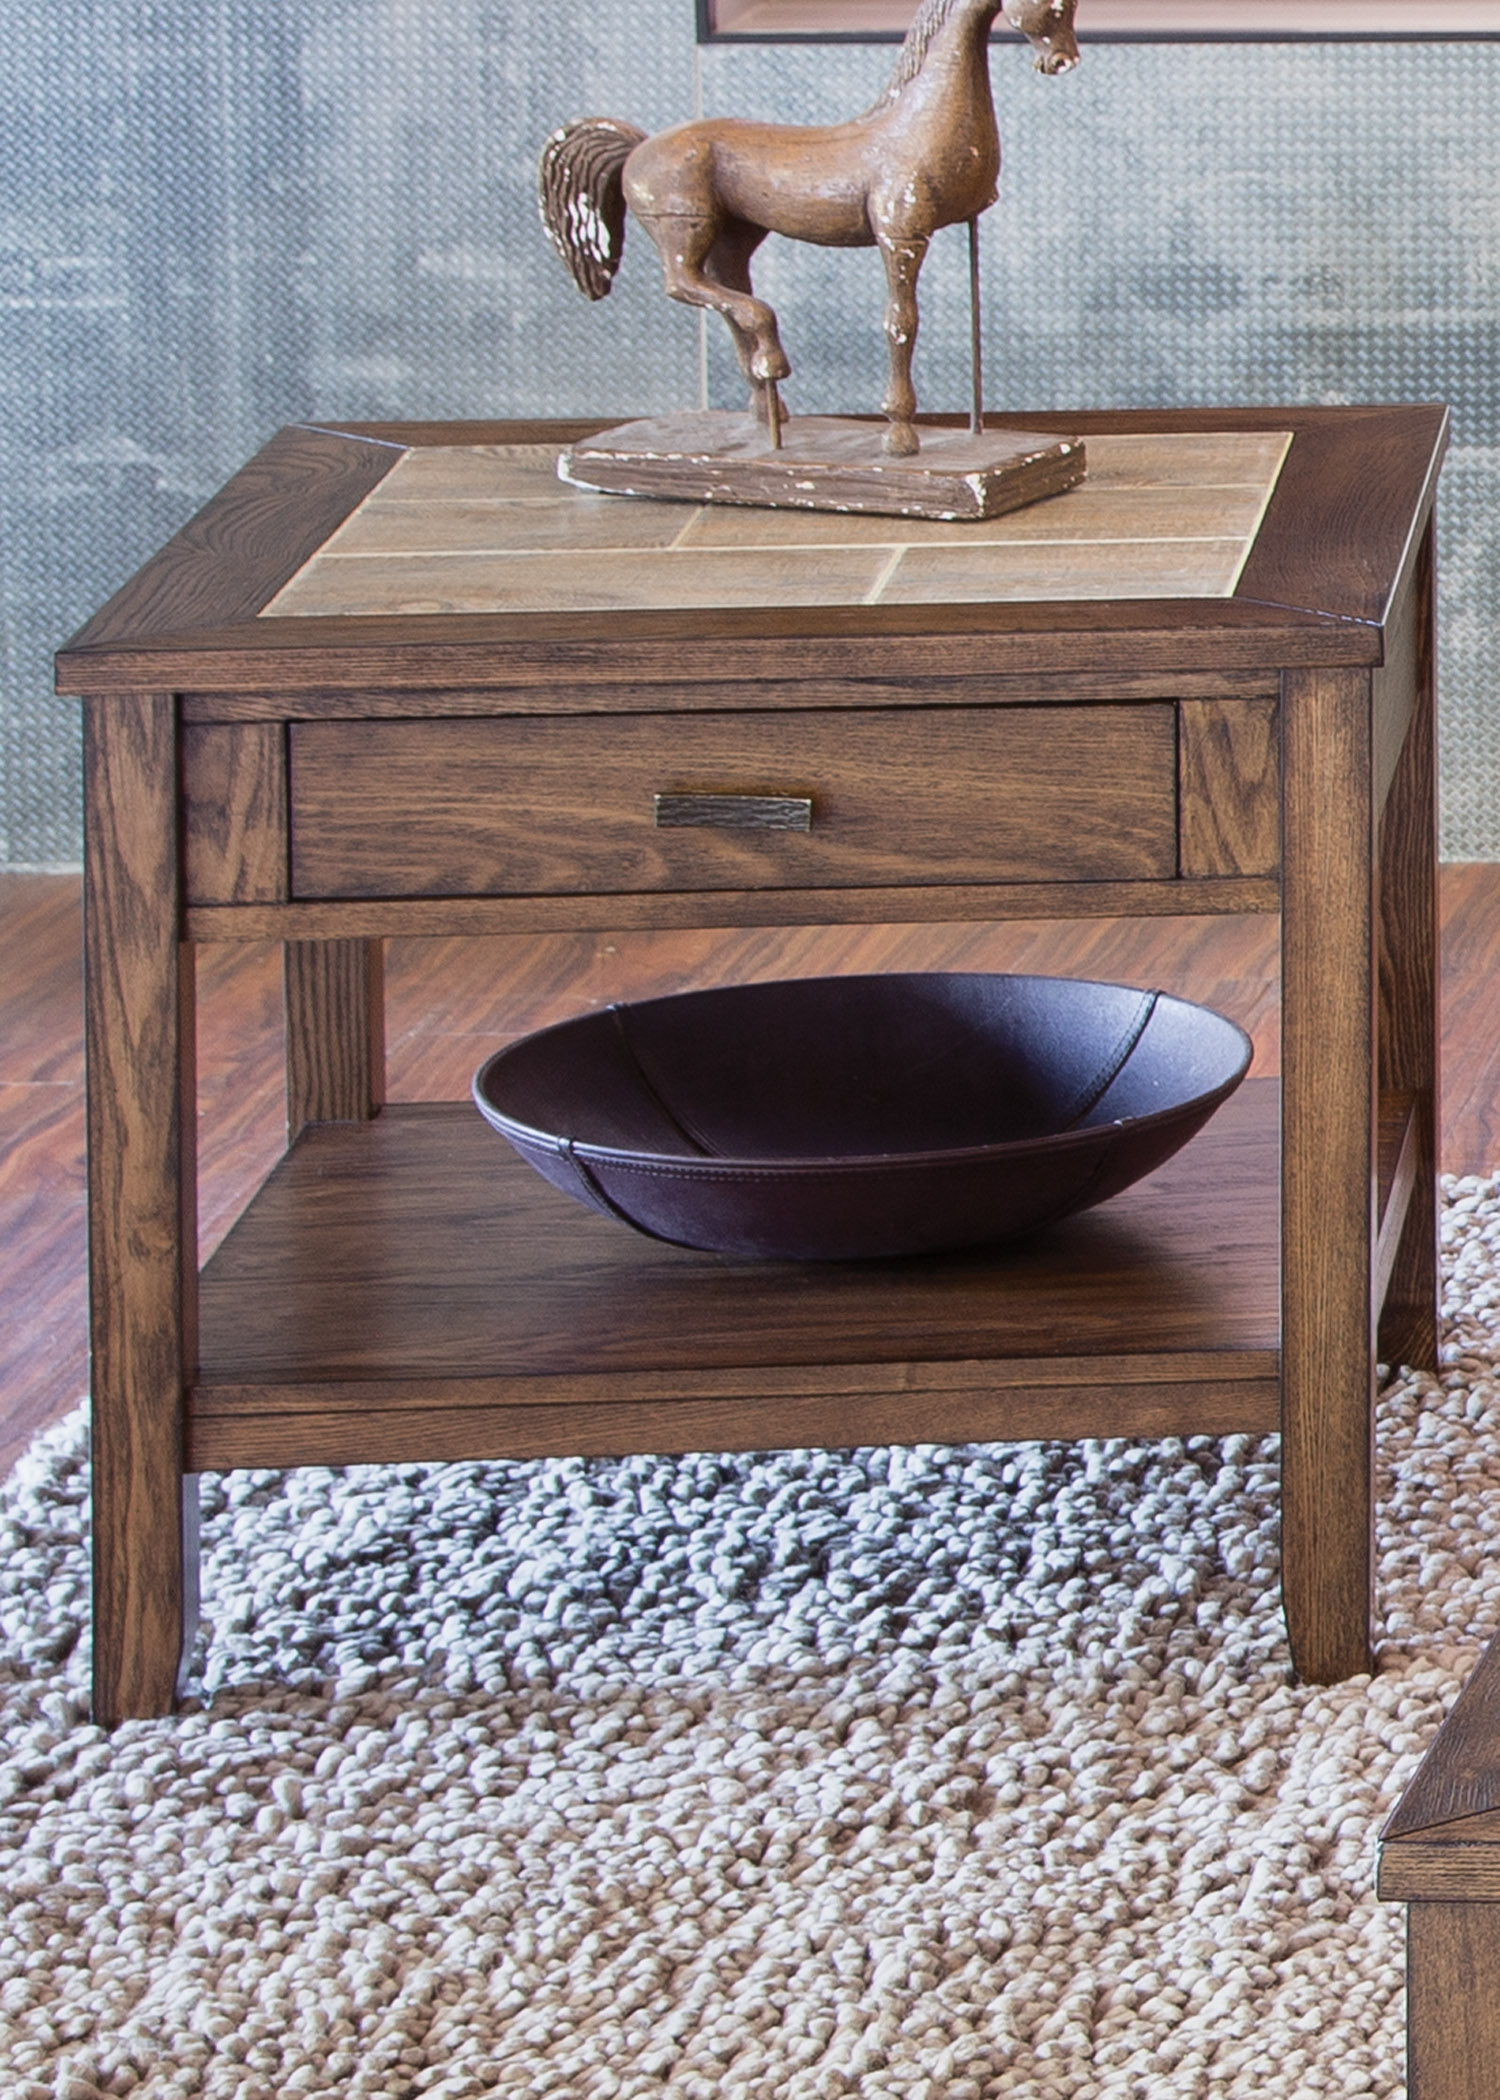 end table with ceramic tile top liberty furniture wolf products color mesa valley occasional tables glass nesting target kmart kids boots what acme west elm mango coffee lunch